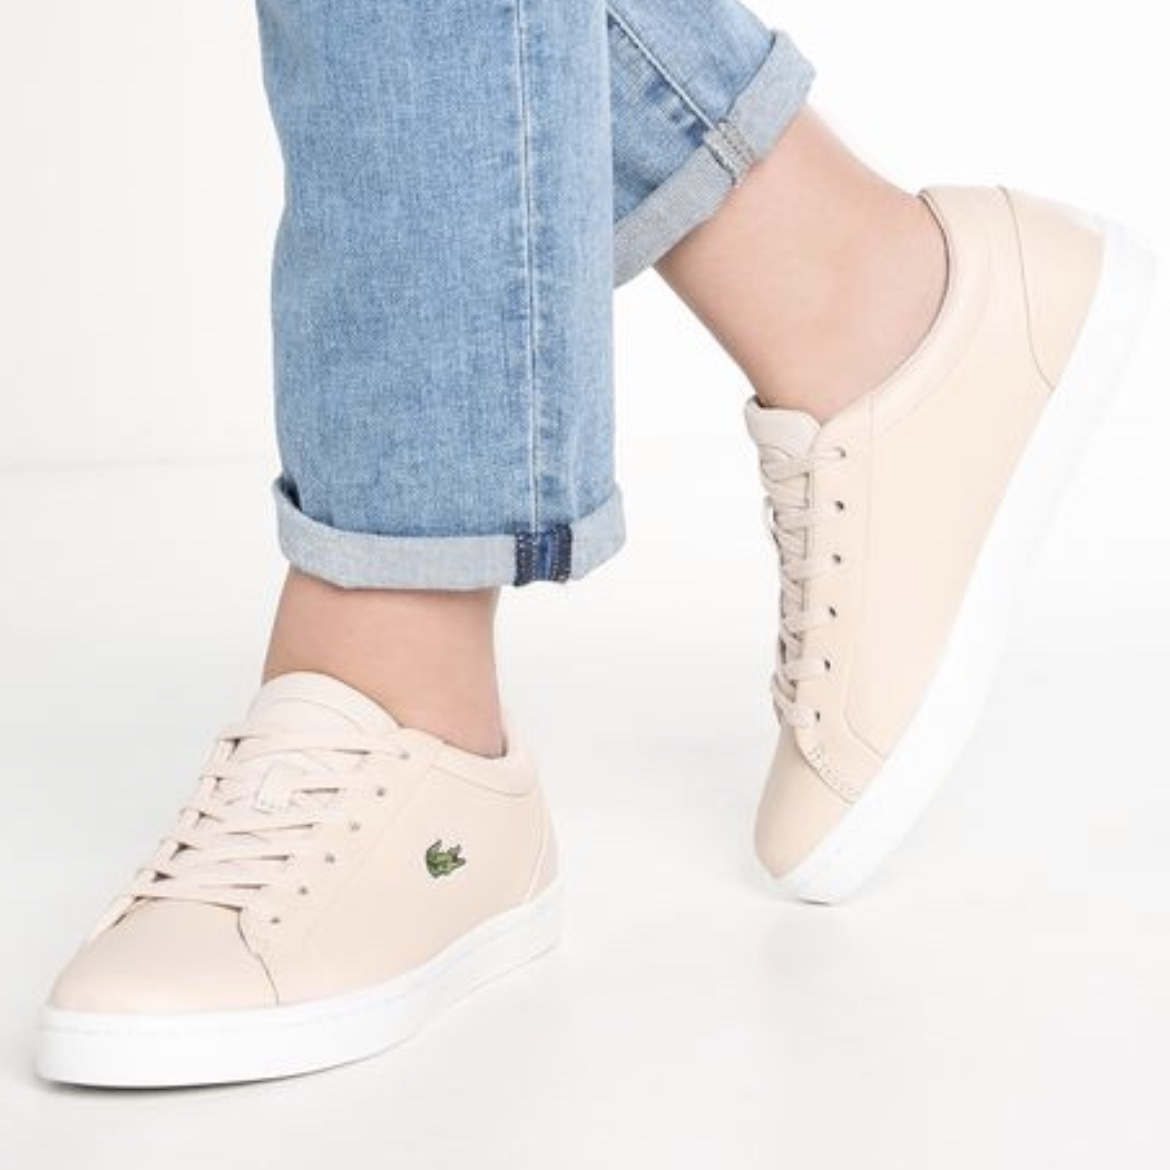 Lacoste Straightset trainer in Light